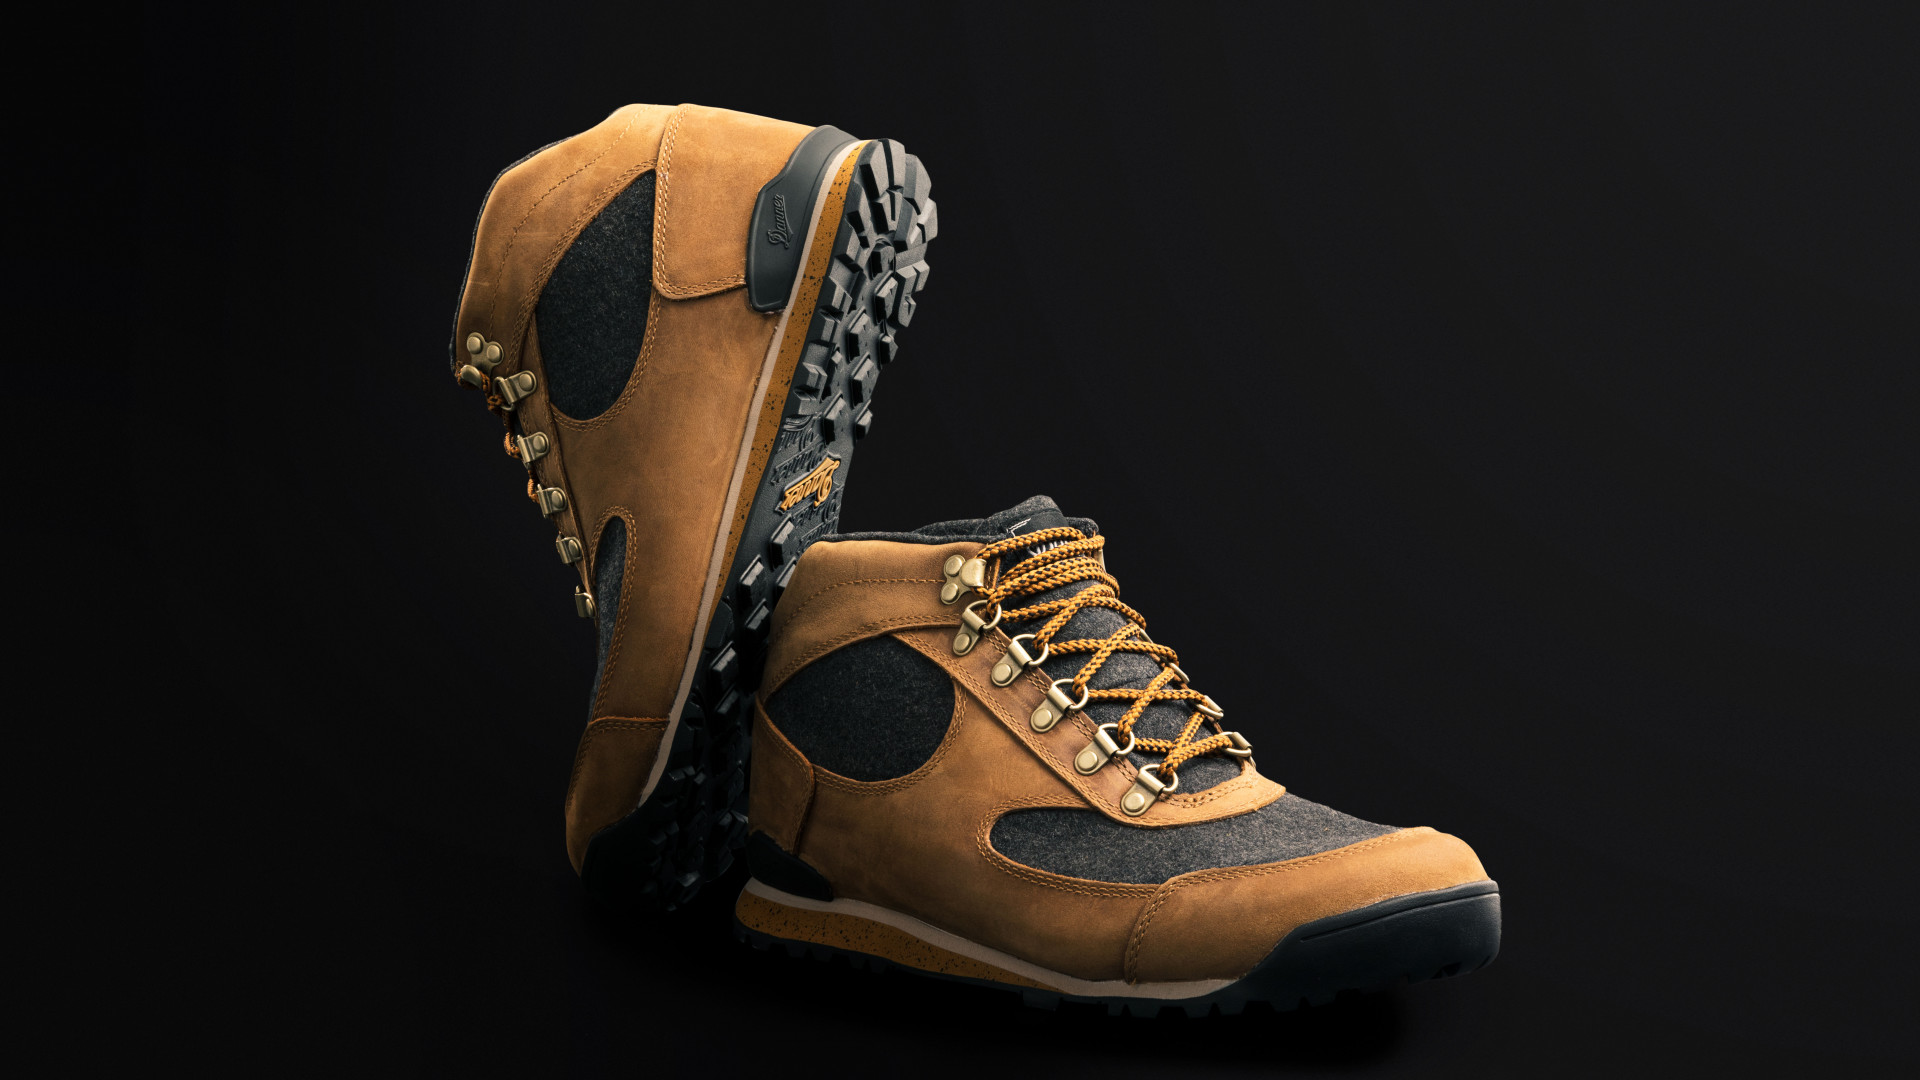 Danner Jag Wool Hiking Boot Gear Review Escapism Magazine